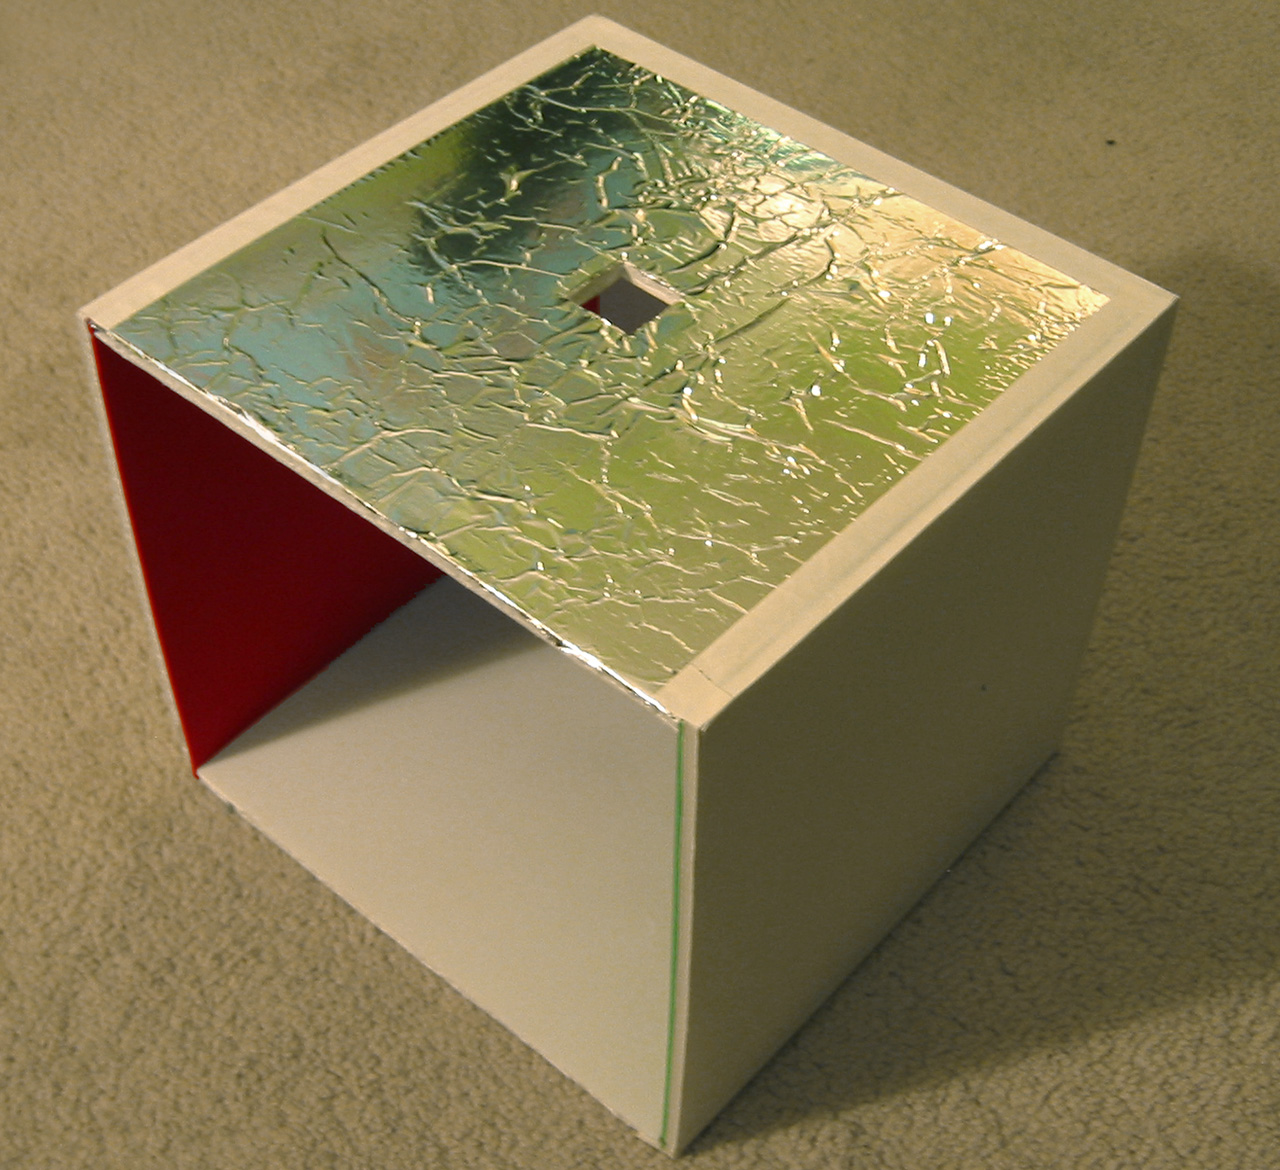 cornell_box_physical_model_image17